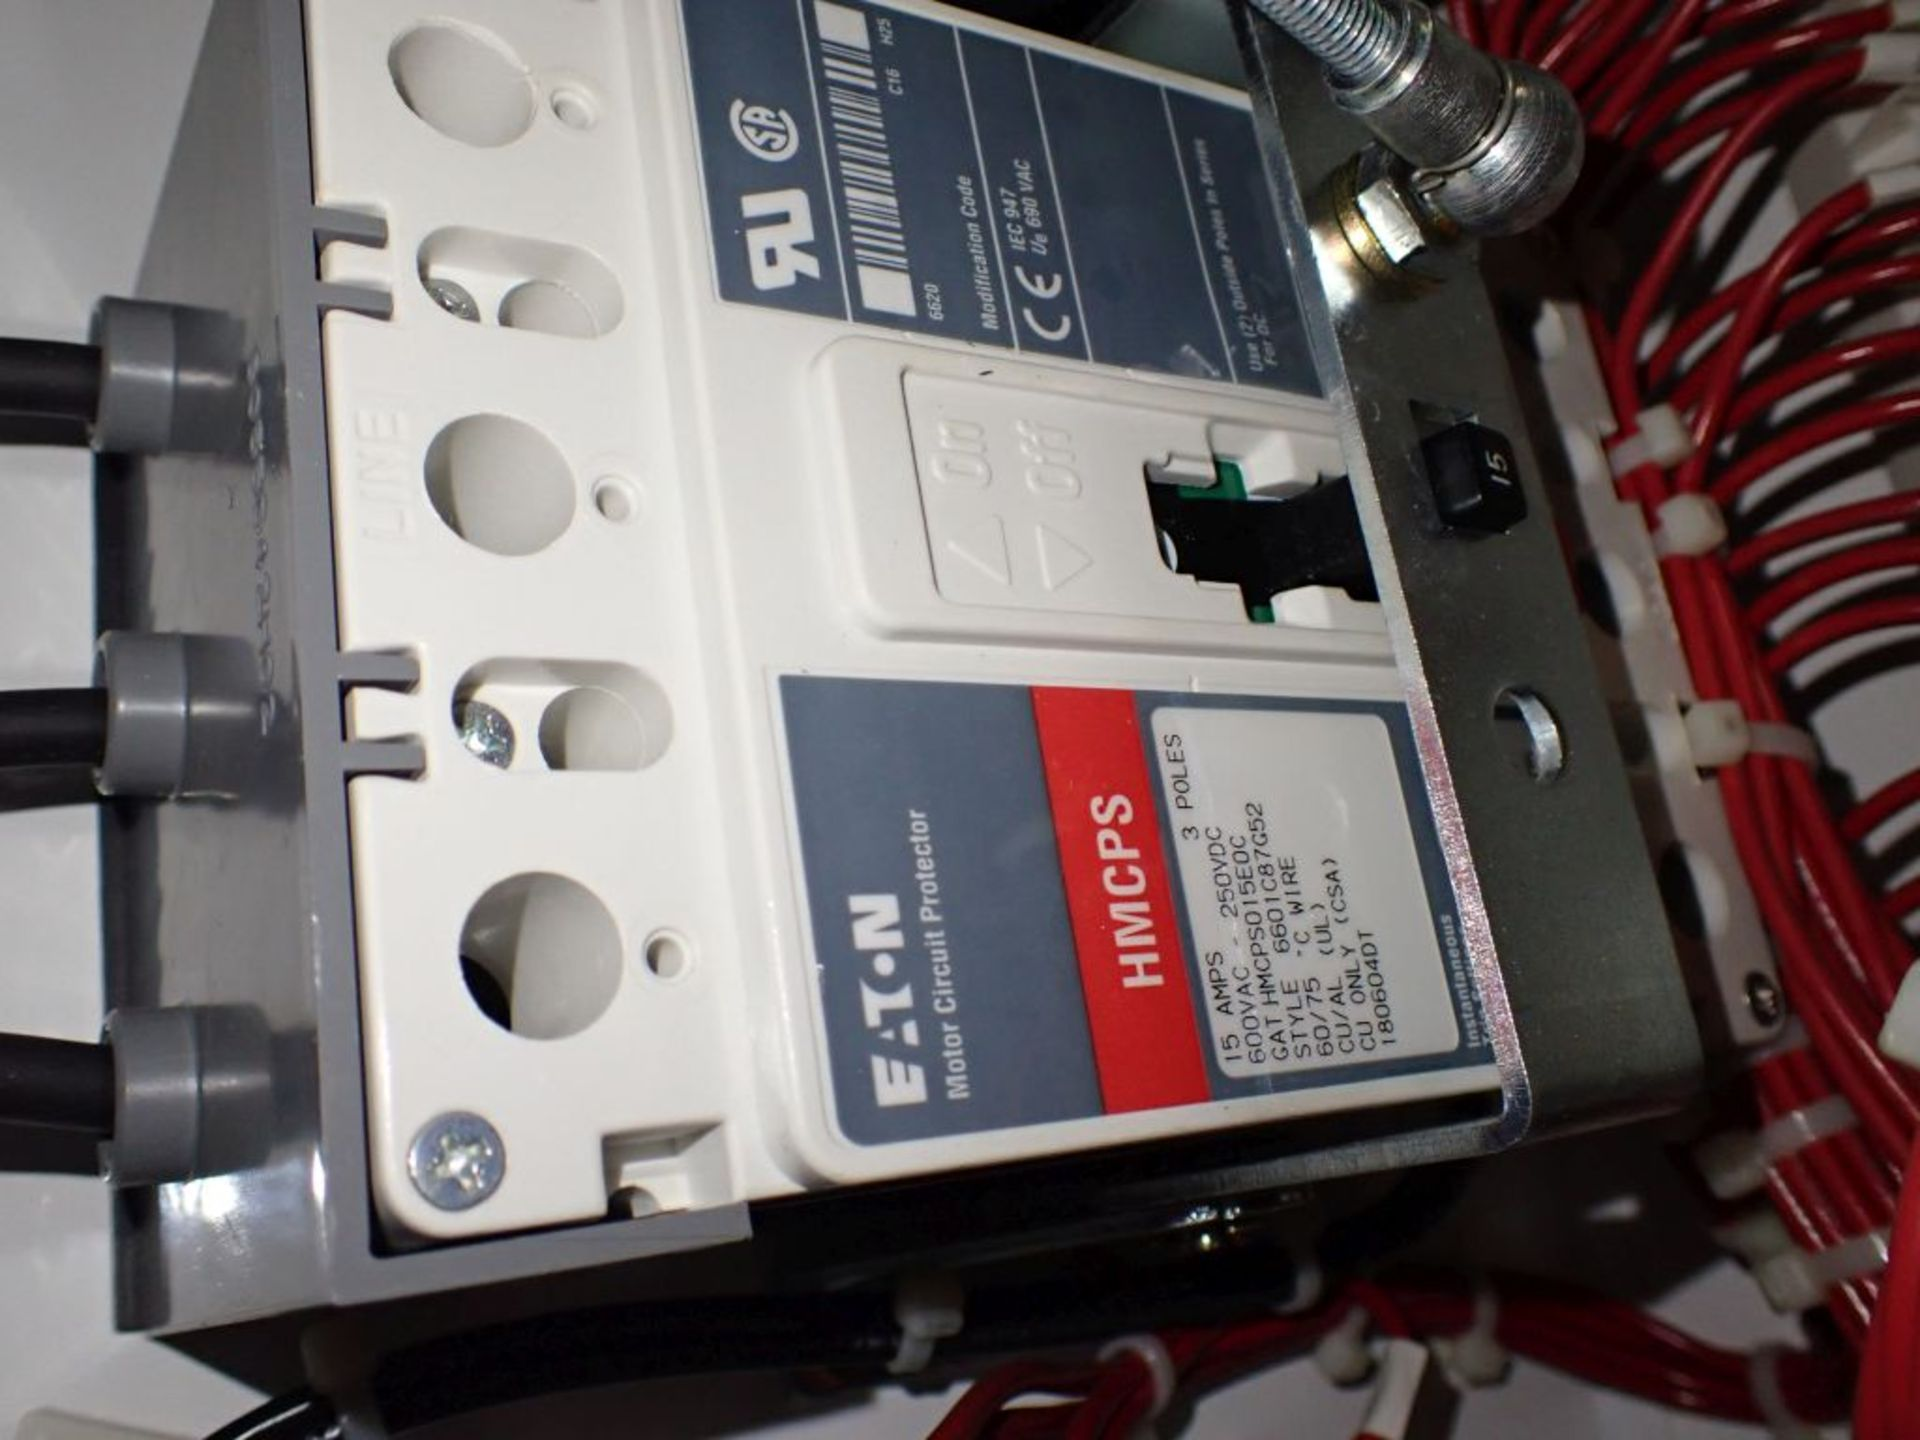 Eaton Freedom 2100 Series Motor Control Center | (11) F206-30A-10HP; (5) F206-15A-10HP; (1) SVX900- - Image 61 of 102